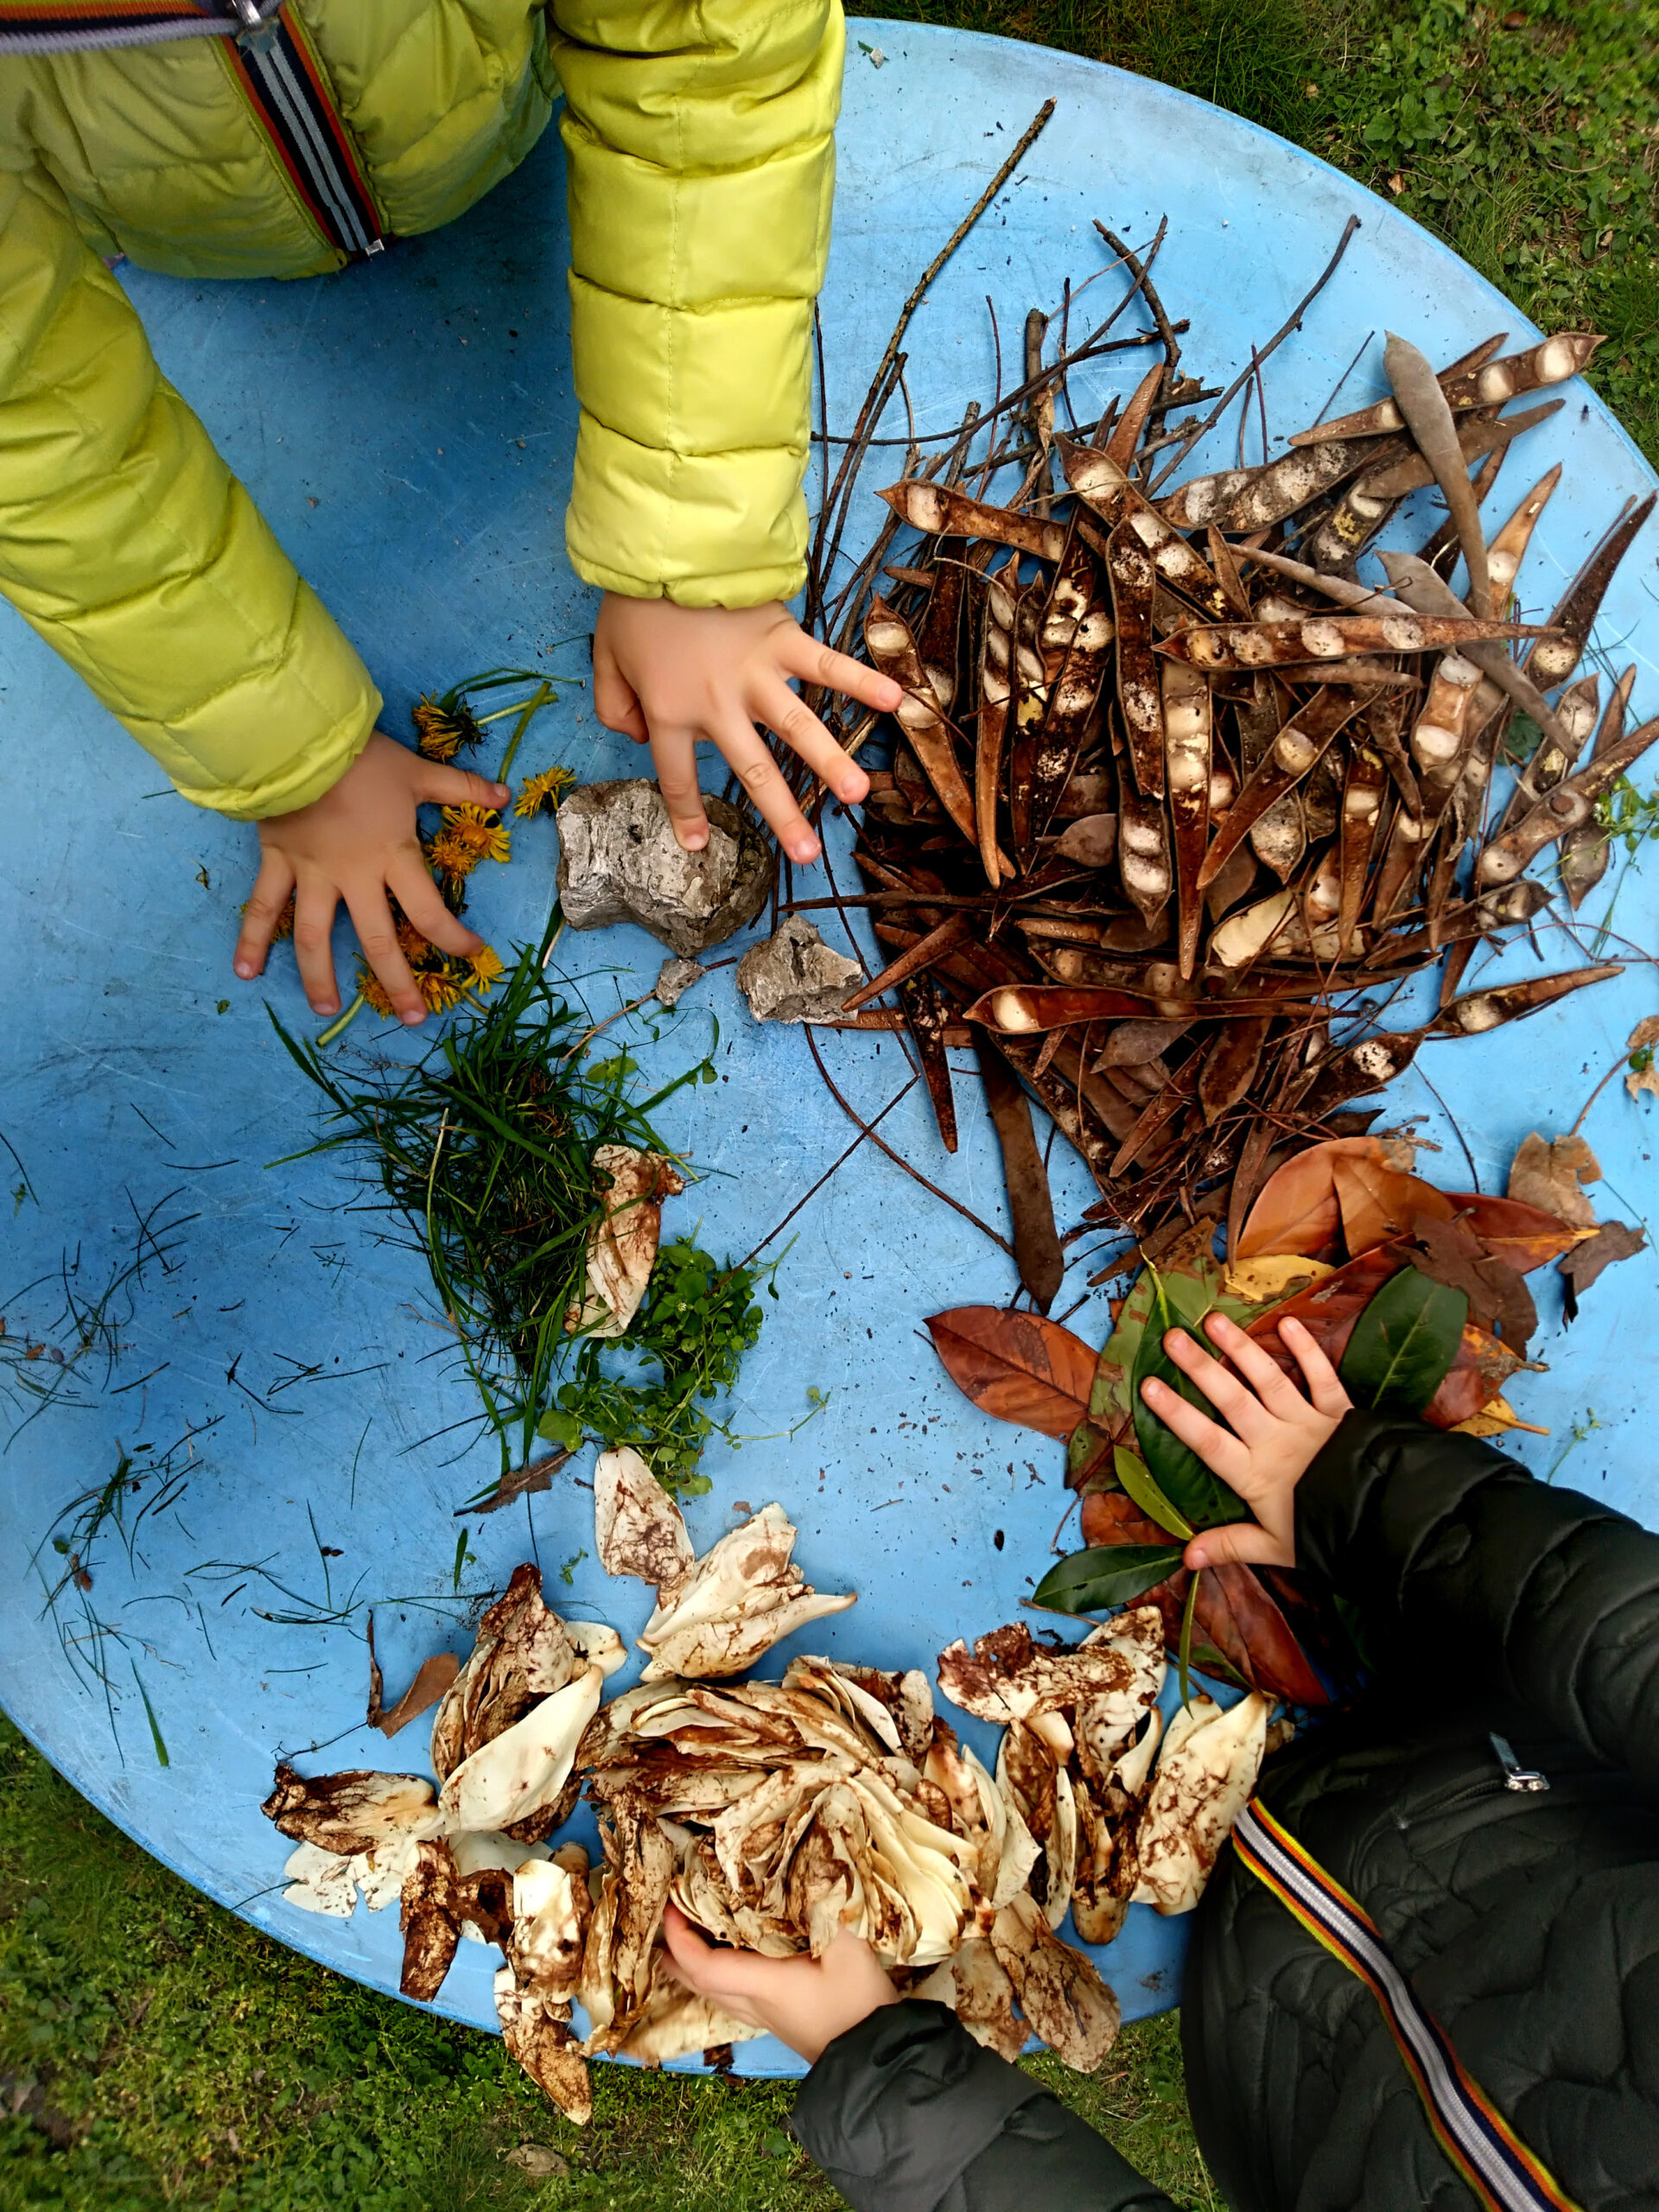 little children playing, expolring and gardening in the garden with soil, leaves, nuts, sticks, plants, seeds during a school activity - learning by doing, education and play in the nature concept.